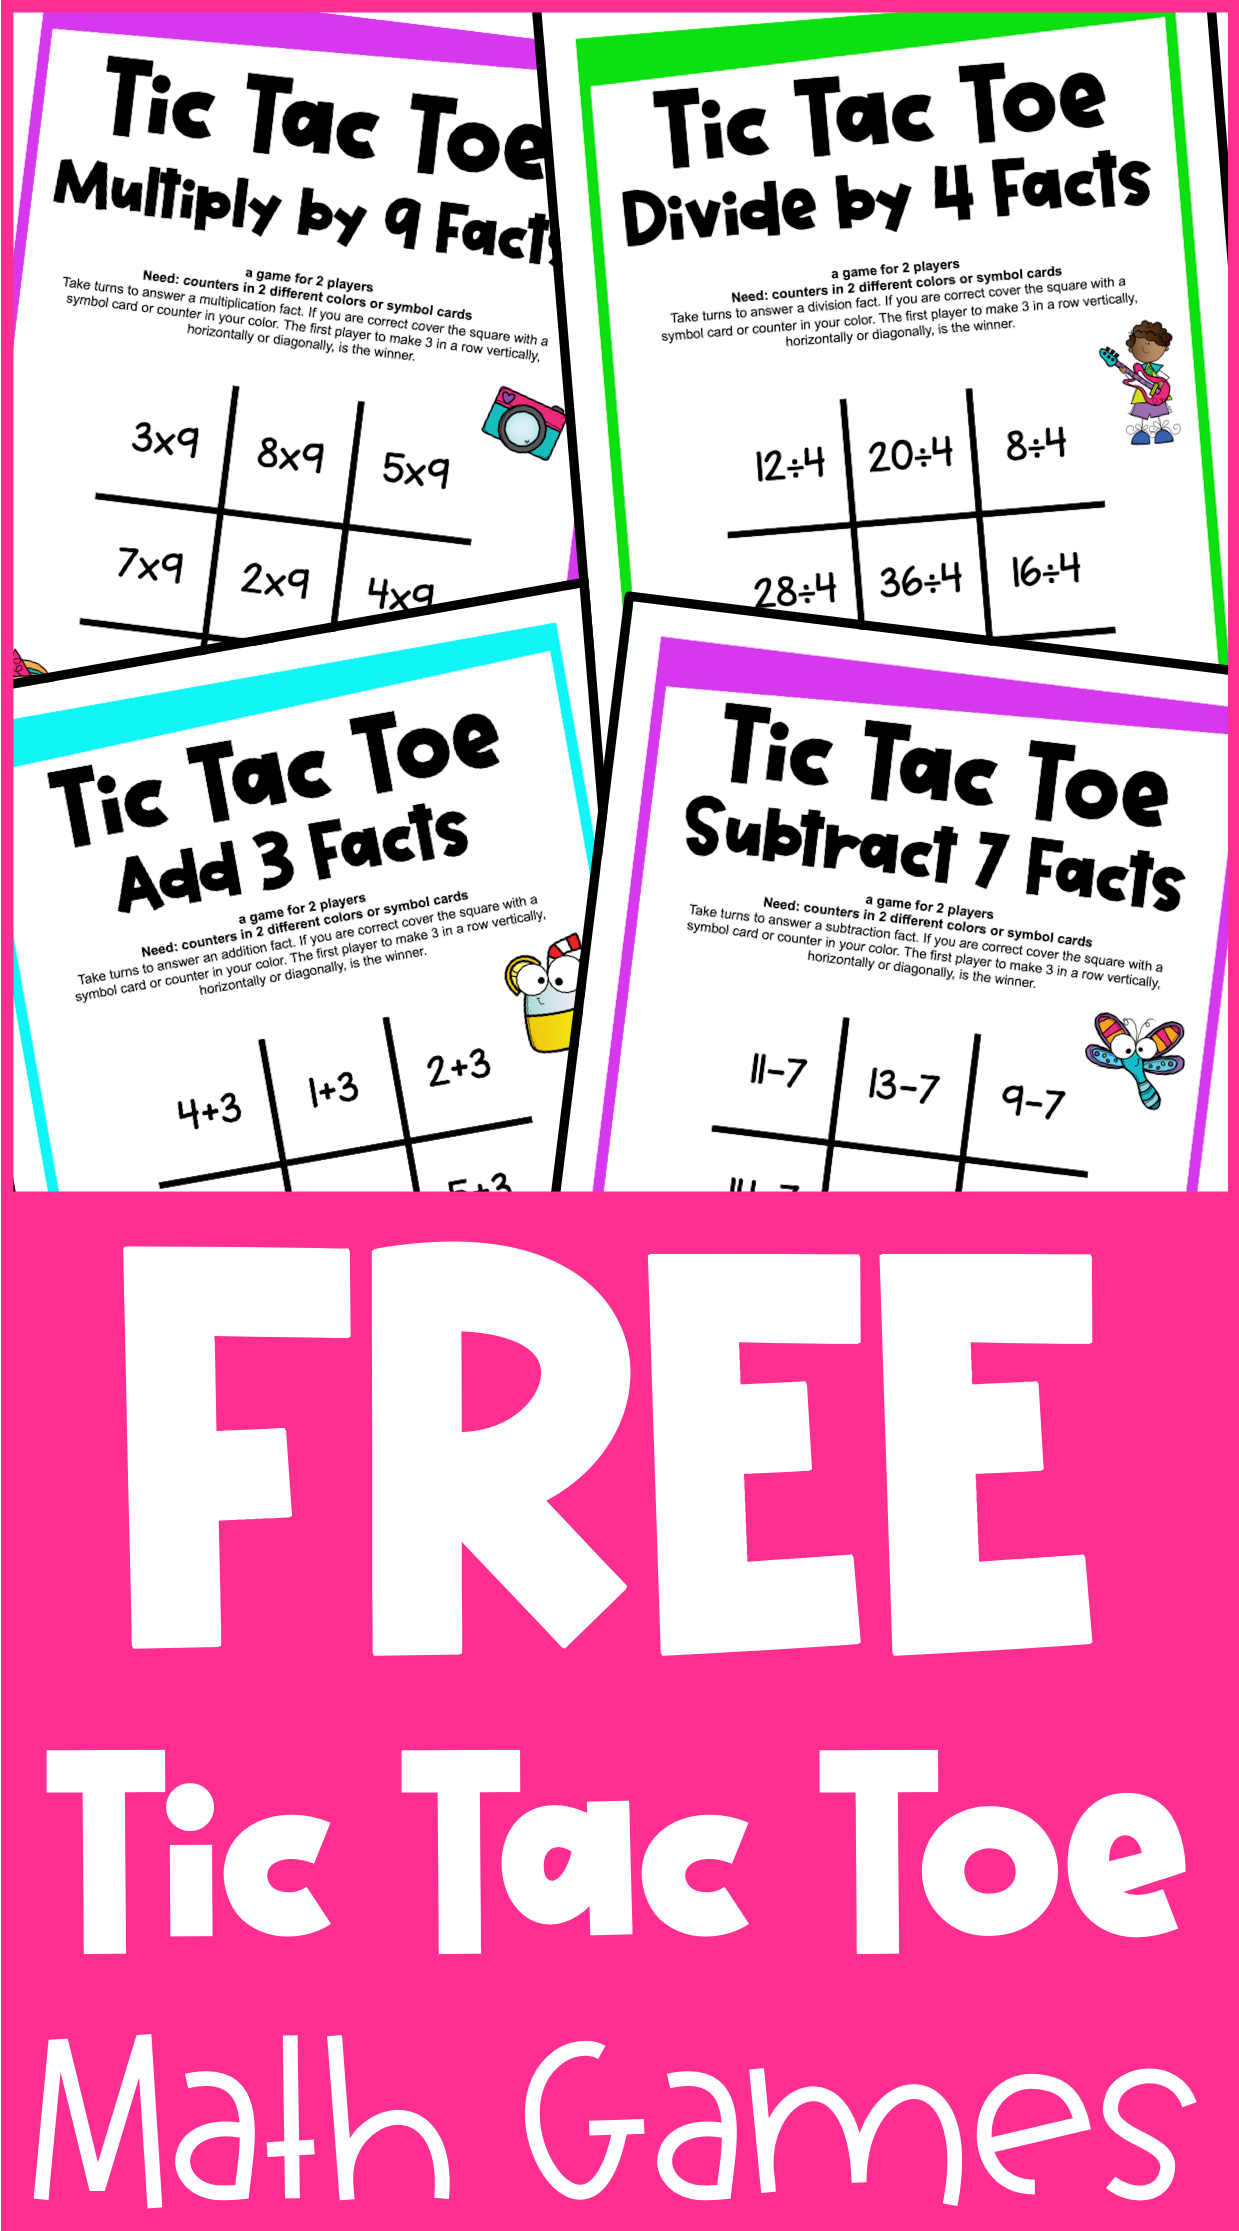 These Free Tic Tac Toe Math Games Are The Fun Way To